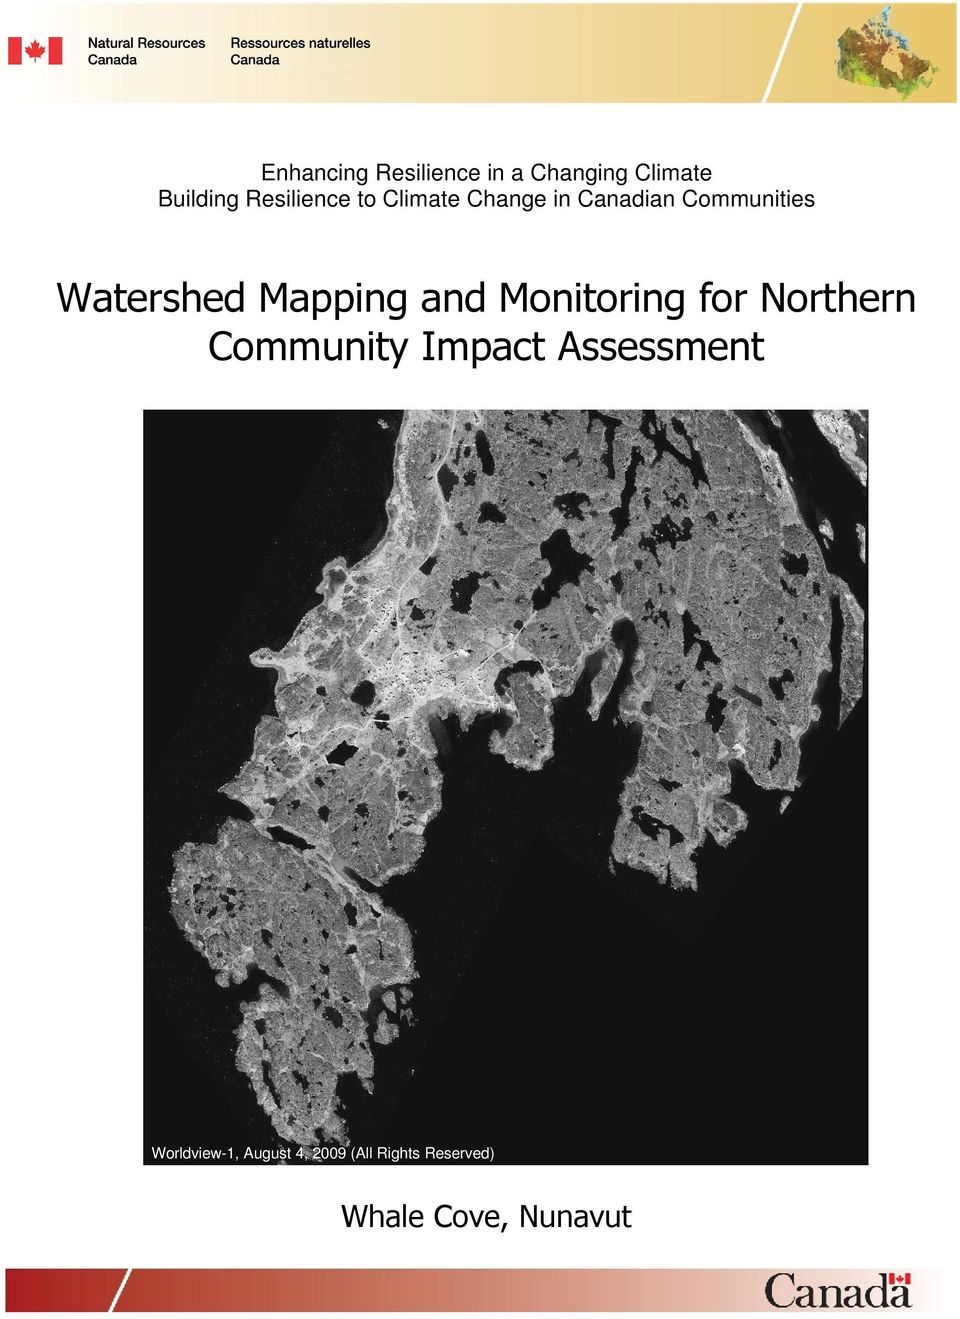 Watershed Mapping and Monitoring for Northern Community